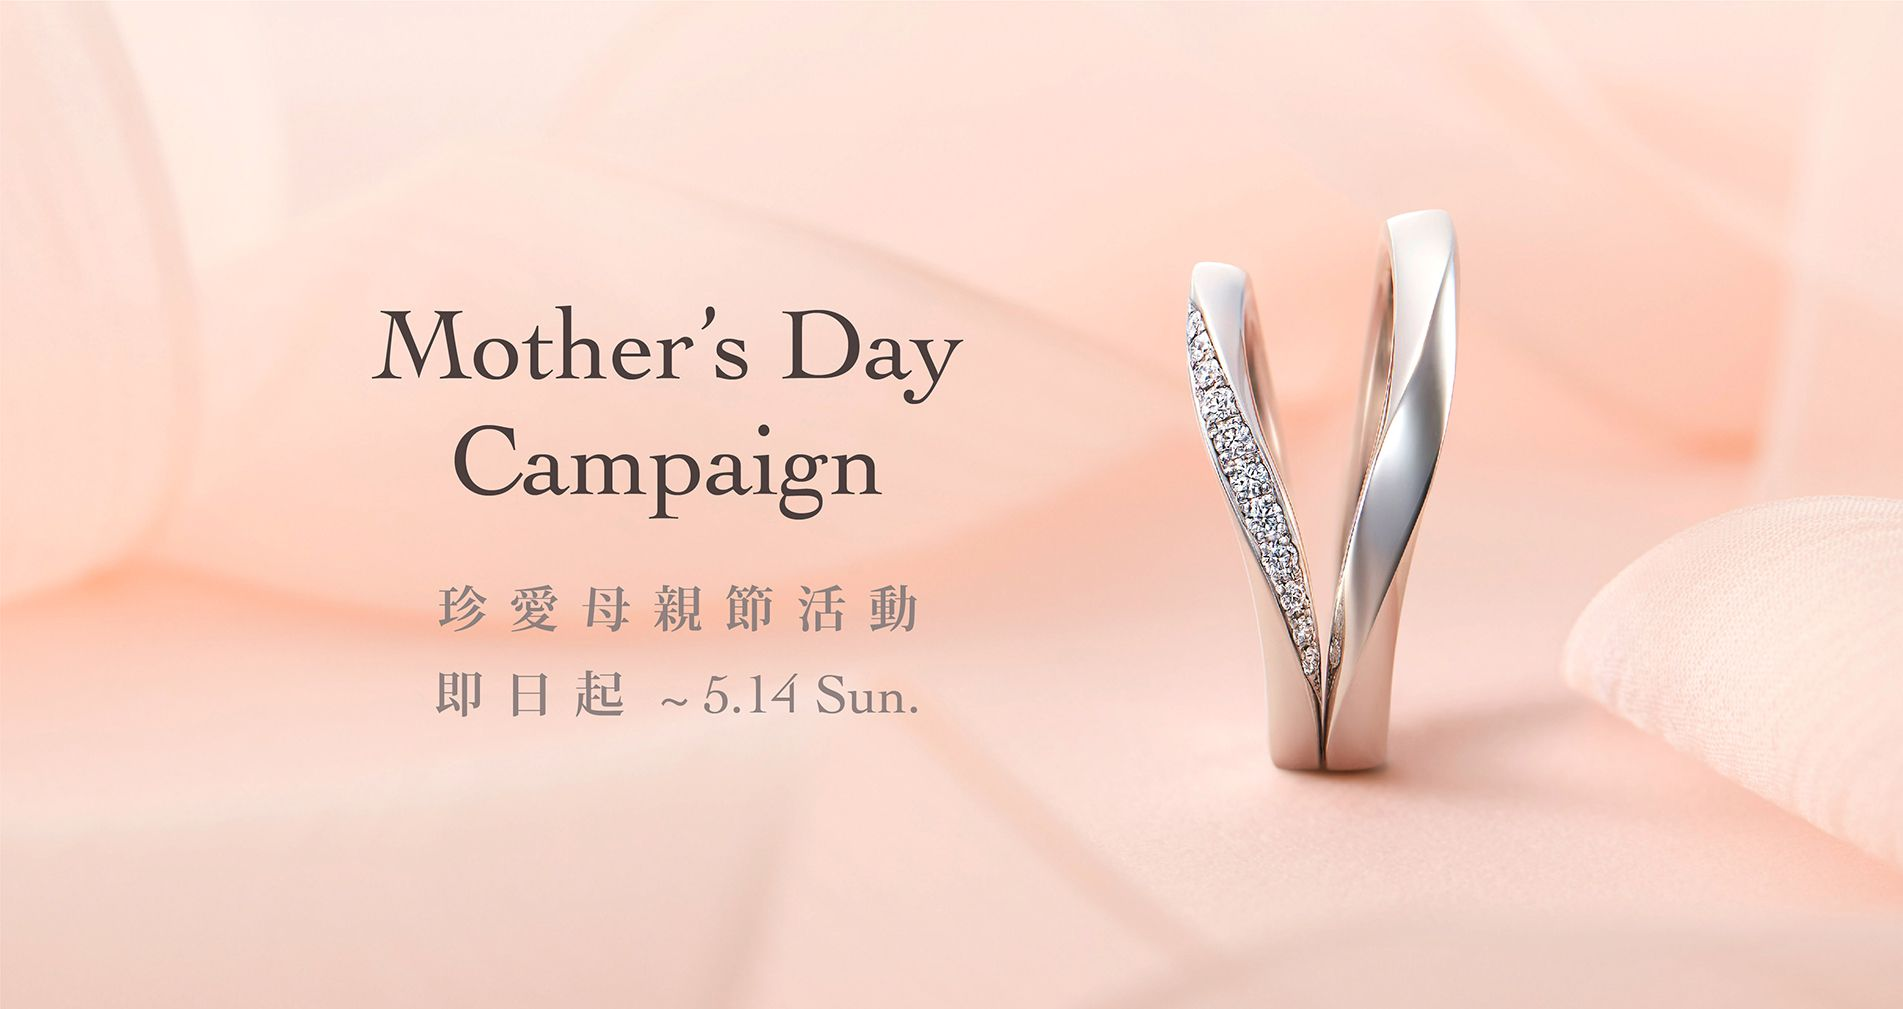 Mother's Day Campaign 珍愛母親節活動